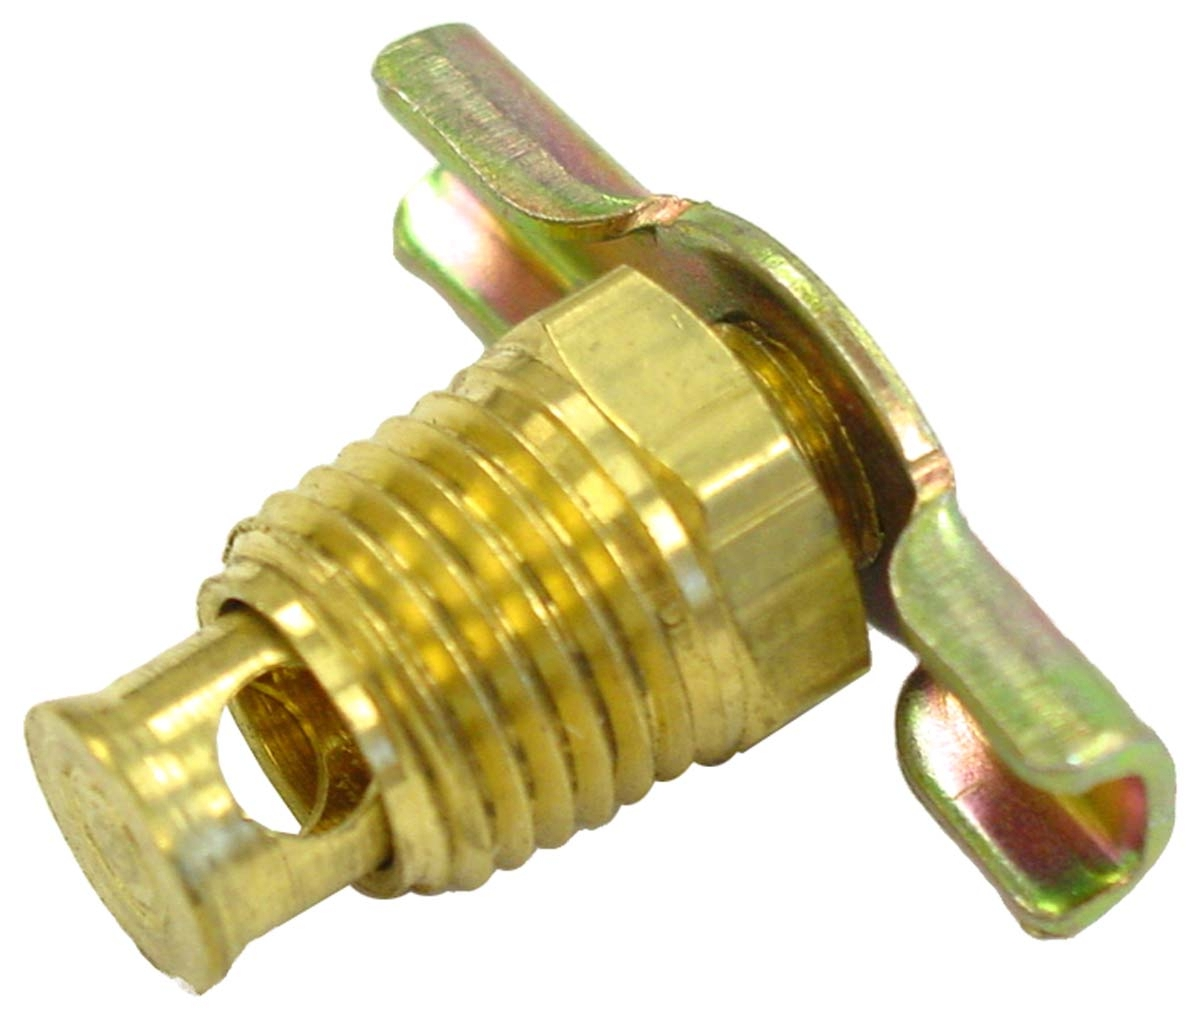 New Steering Worm Gear Shaft For Farmall 140 Tractors 70890c1 Free Shipping additionally 7bu08 Ford Auto Custom 300 59 Ford Automobile Custom 300 in addition Allis Chalmers Hd344 Engine  plete Cranking Core 92348 together with Renault 486 likewise . on oliver tractor steering